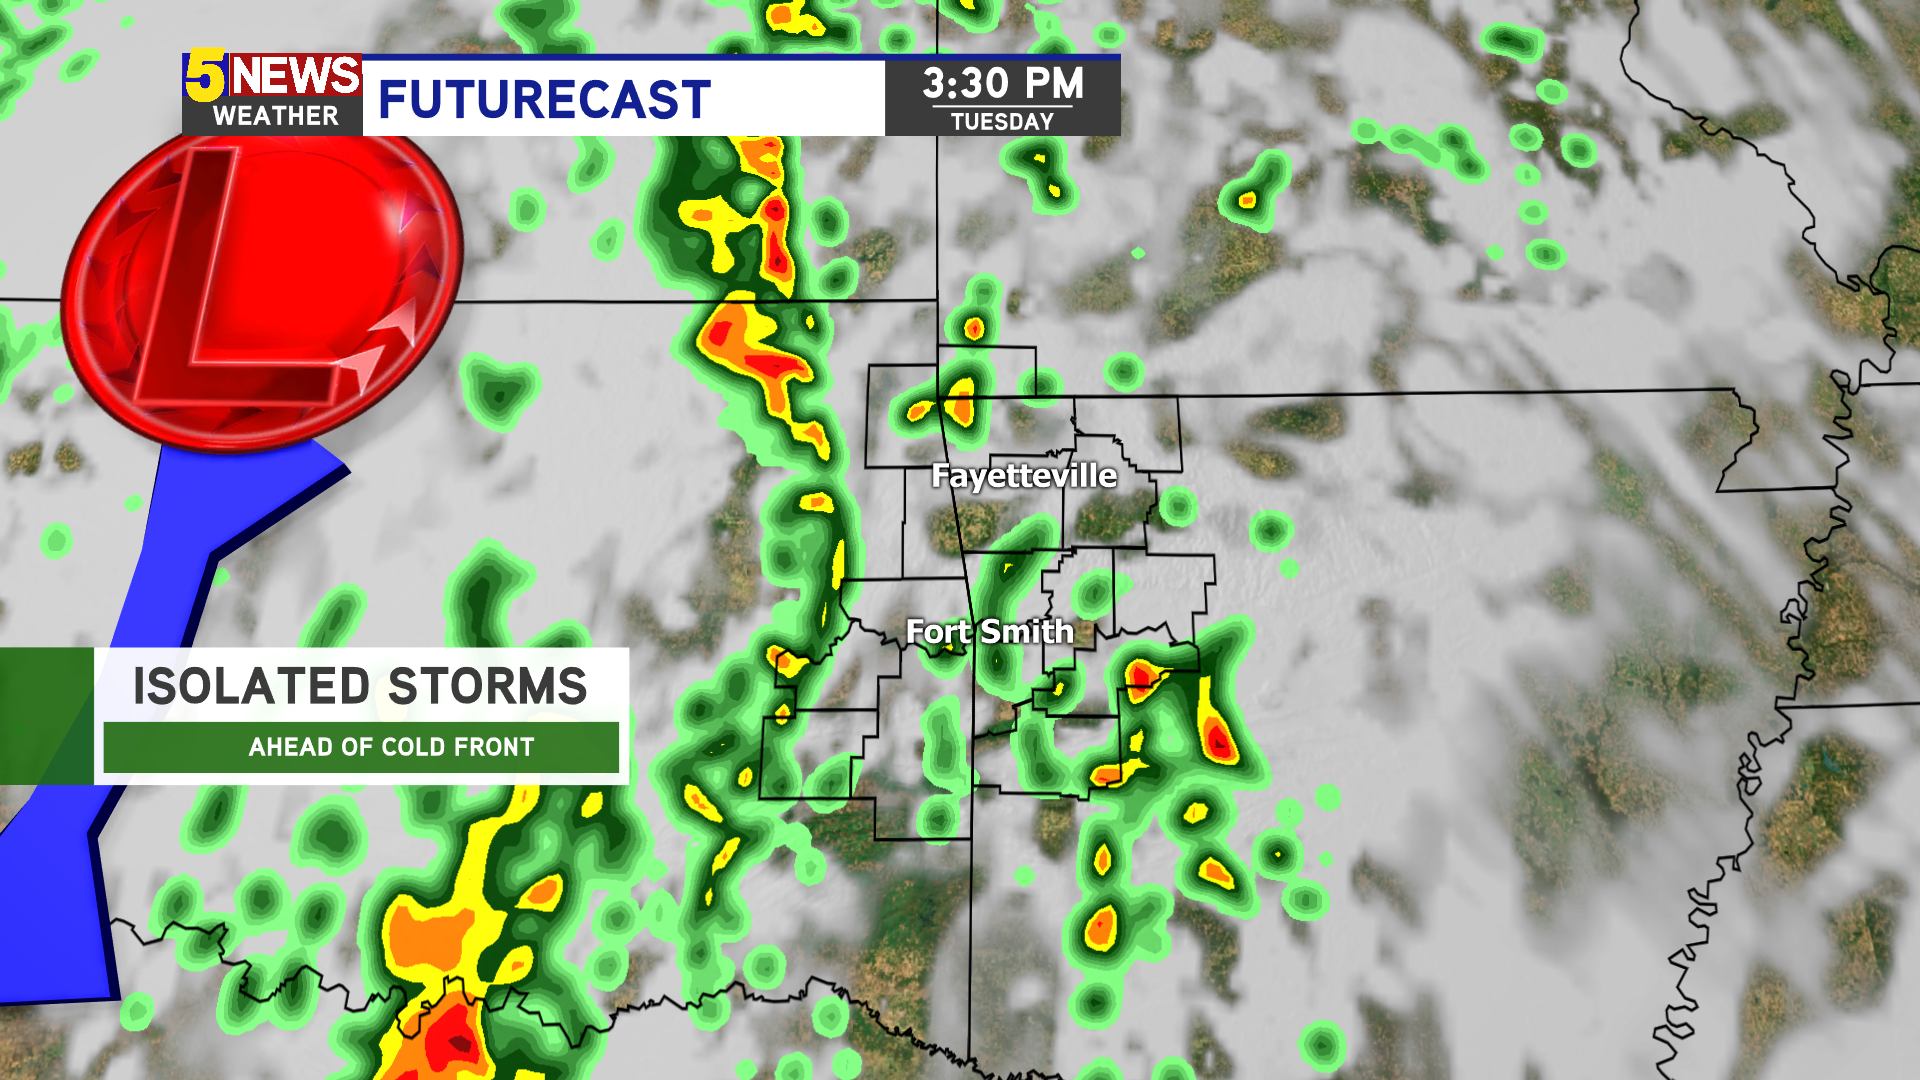 Your hour-by-hour forecast for Tuesday's severe weather threat